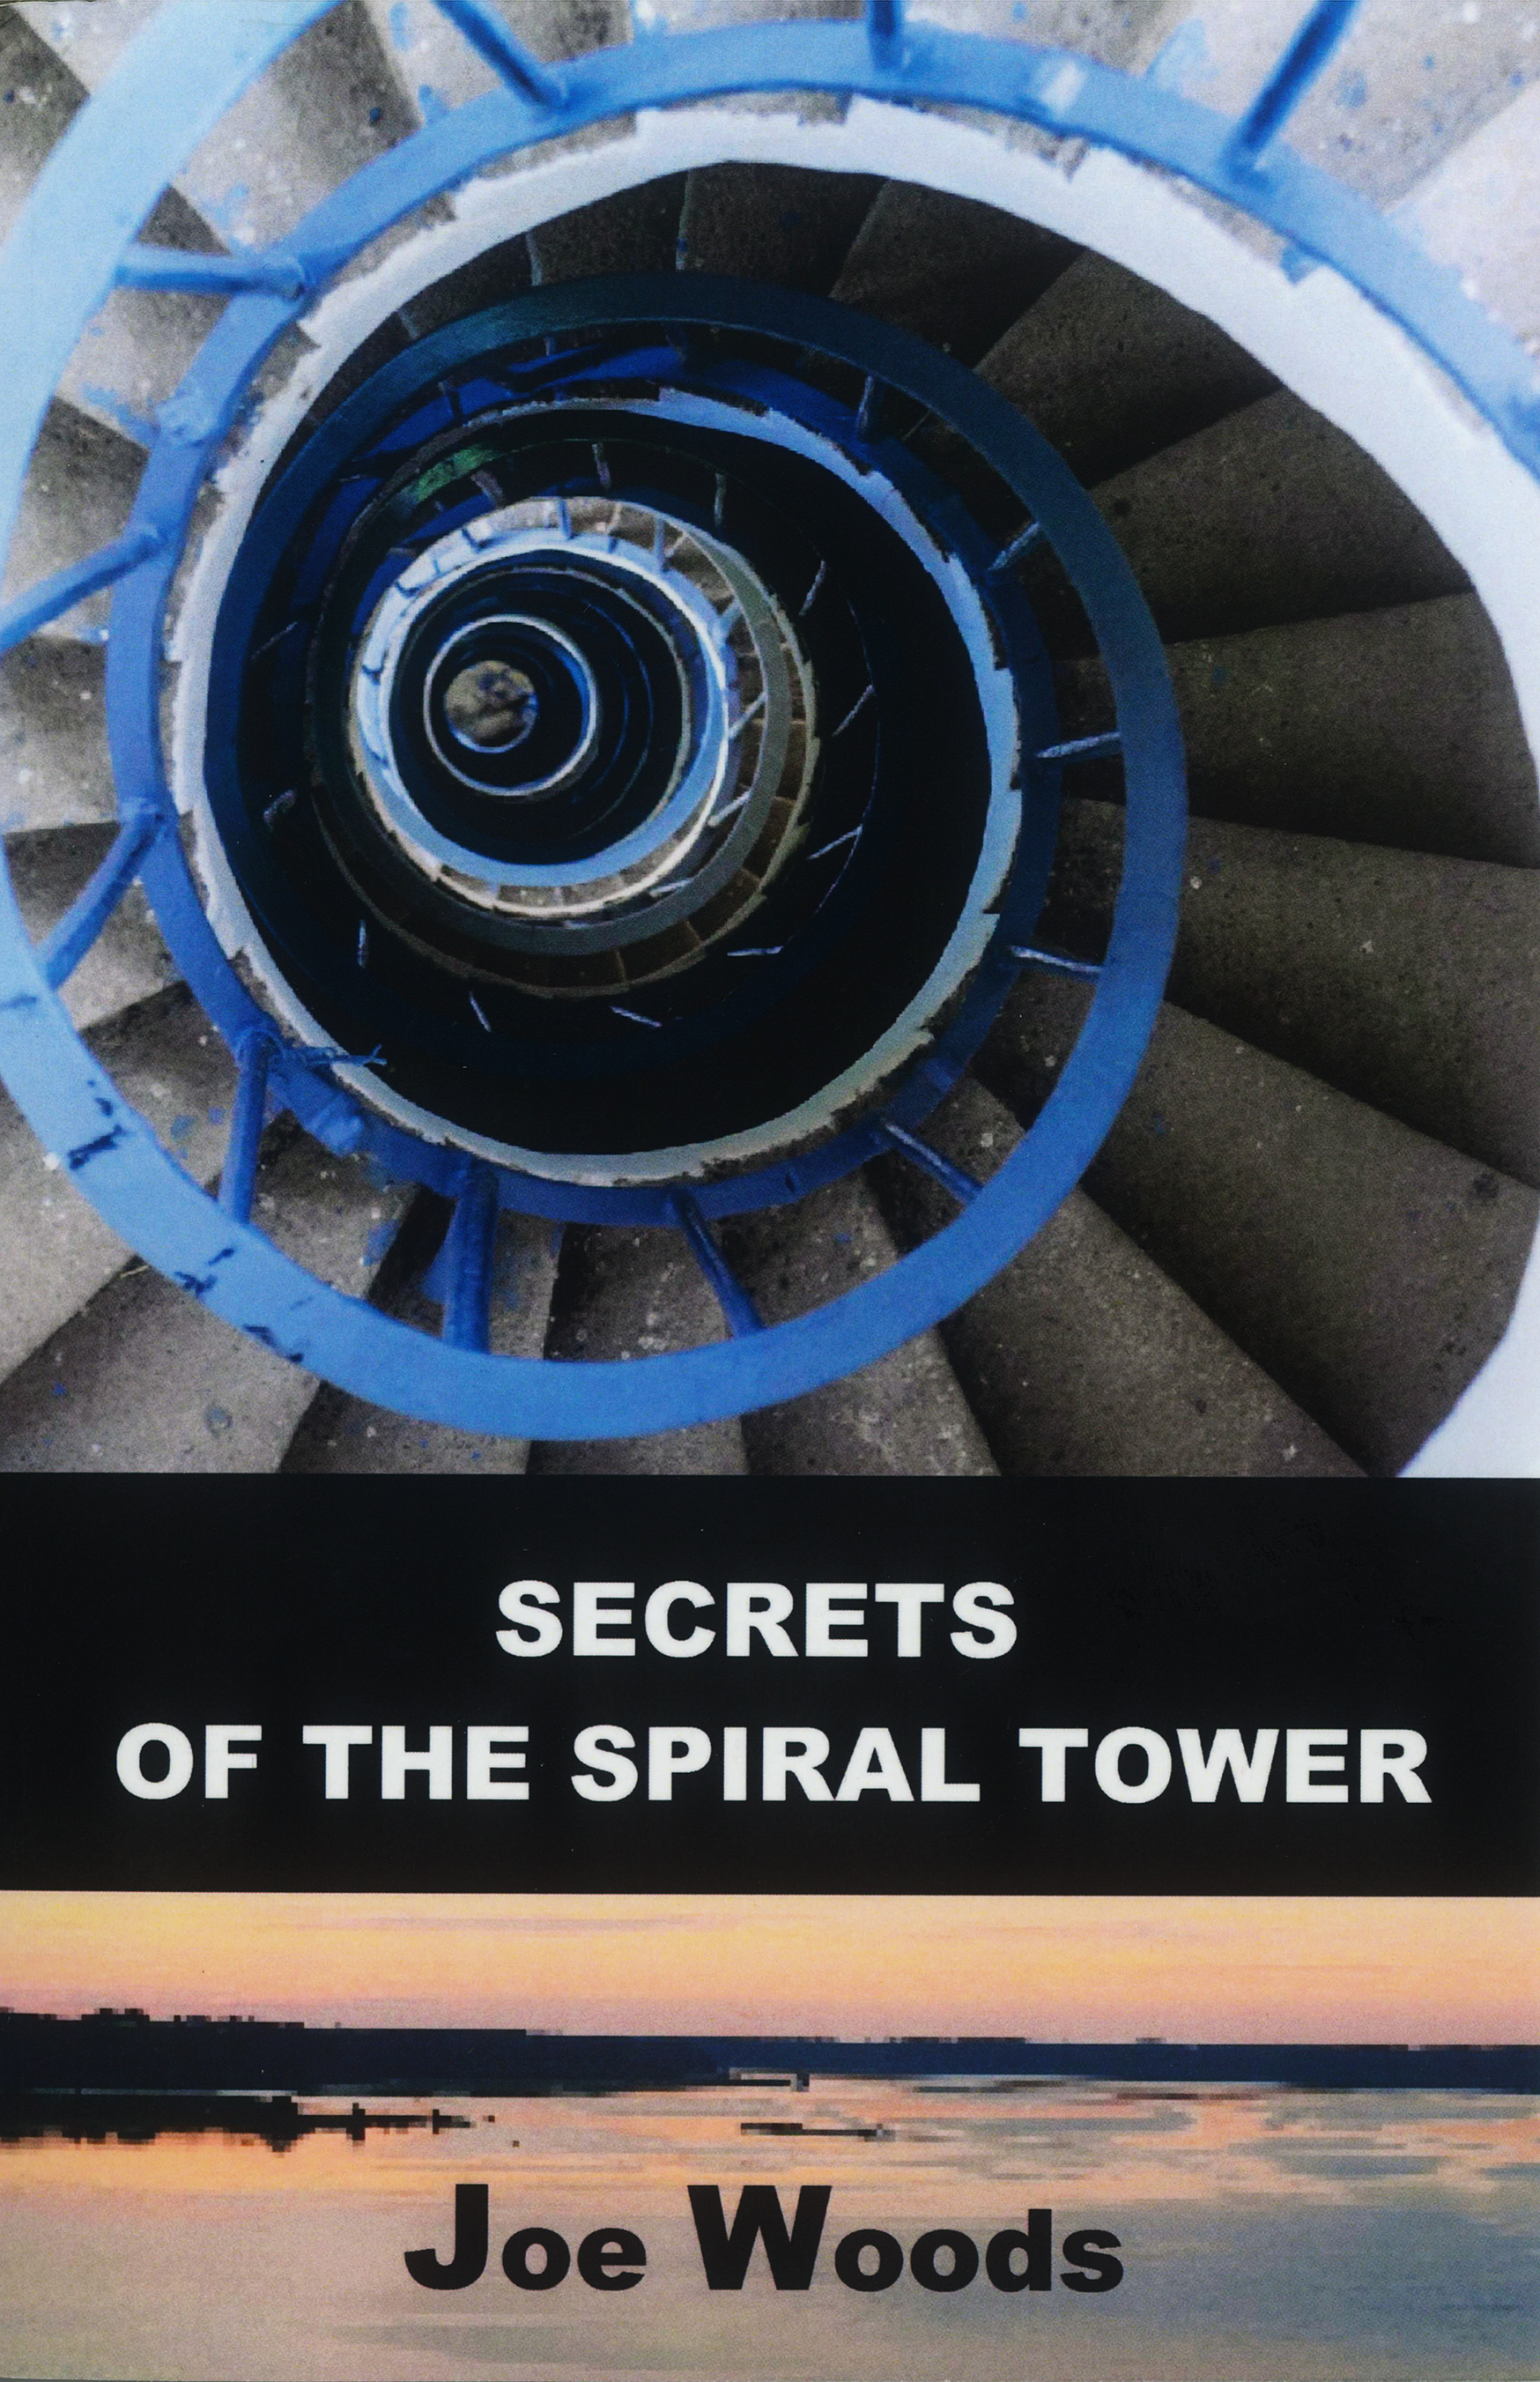 Secrets of the Spiral Tower